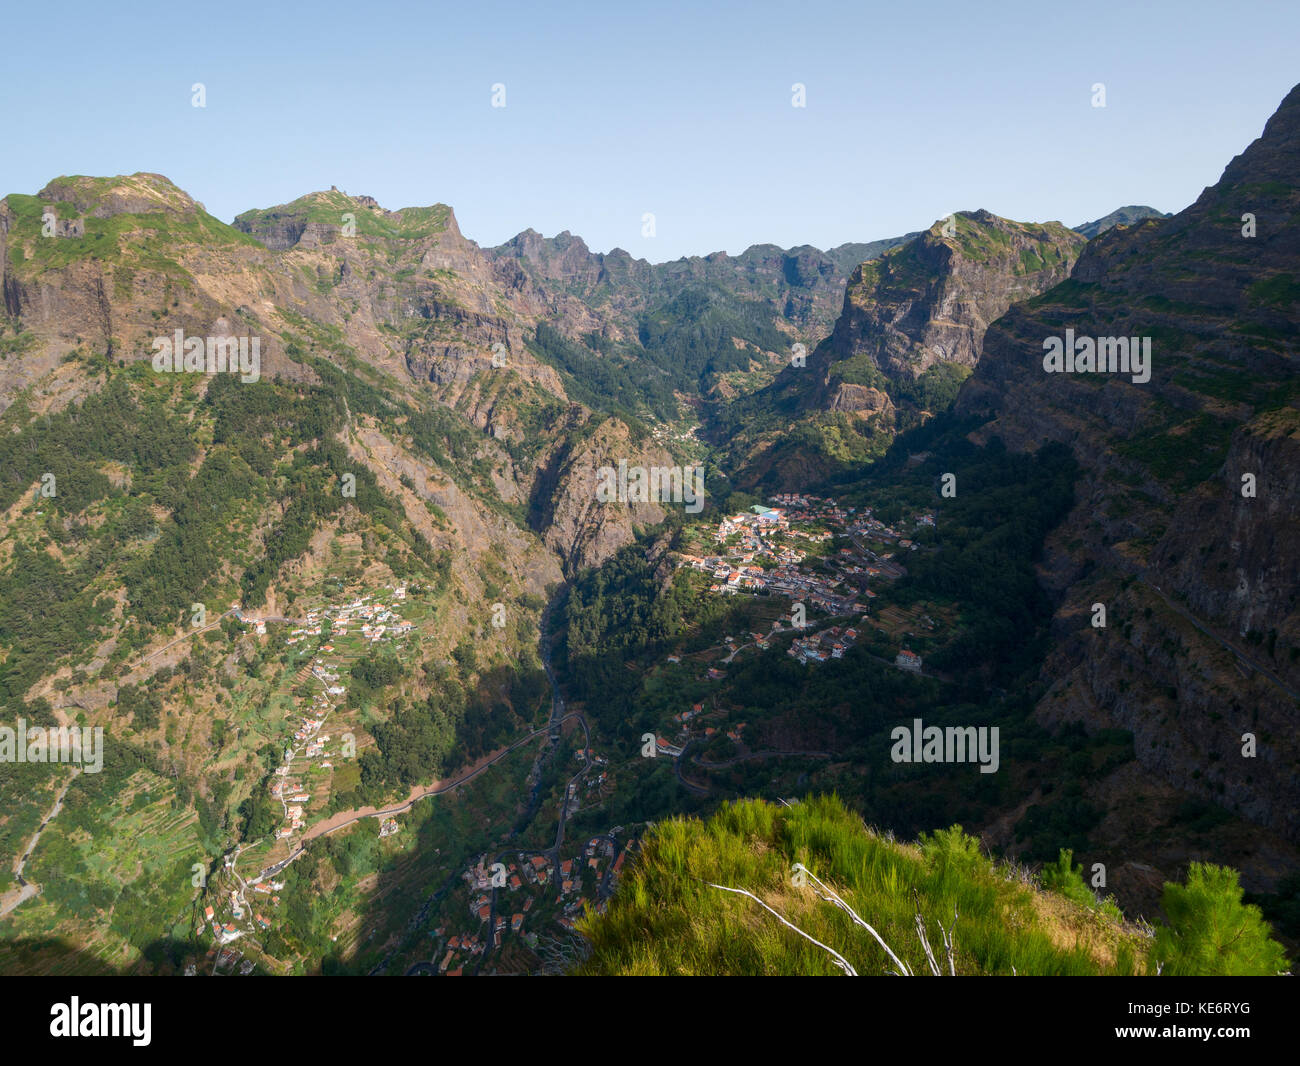 The tiny town of Curral Das Freiras hidden in the mountains of Madeira known as the Nun's Valley - Stock Image